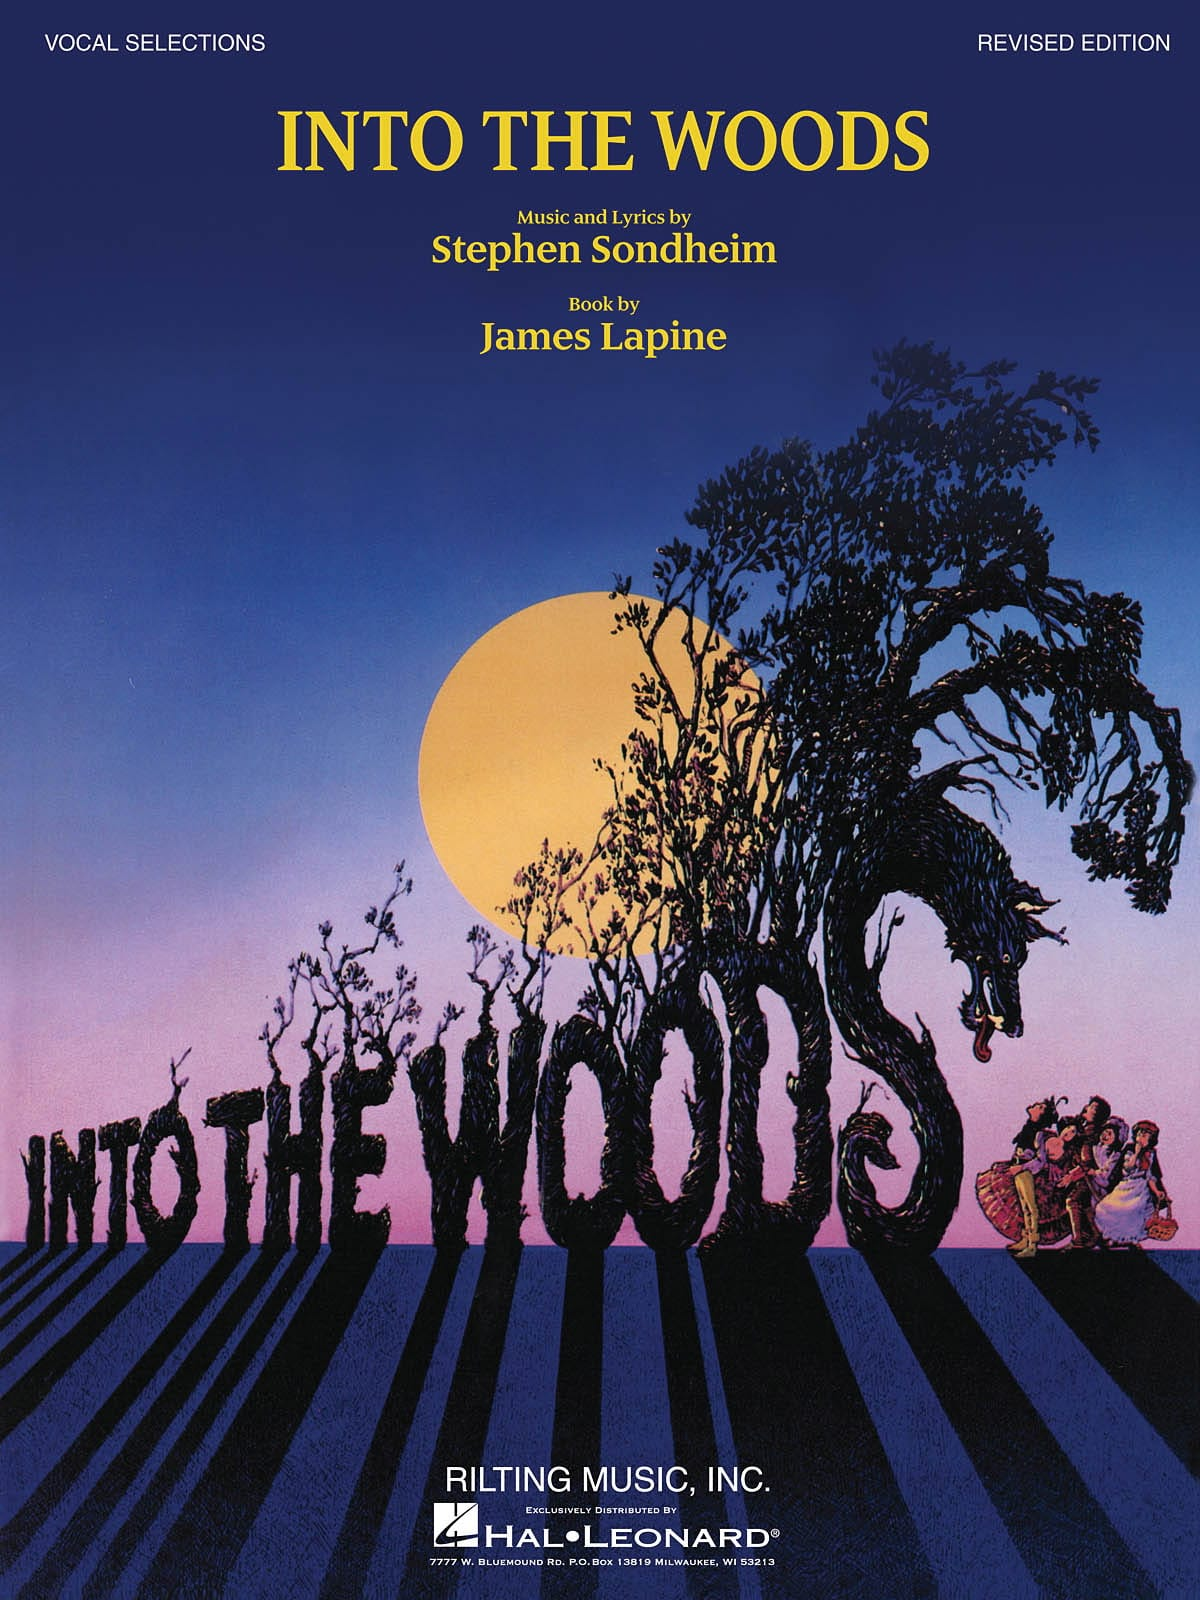 Into the woods - Vocal selections revised édition - laflutedepan.com